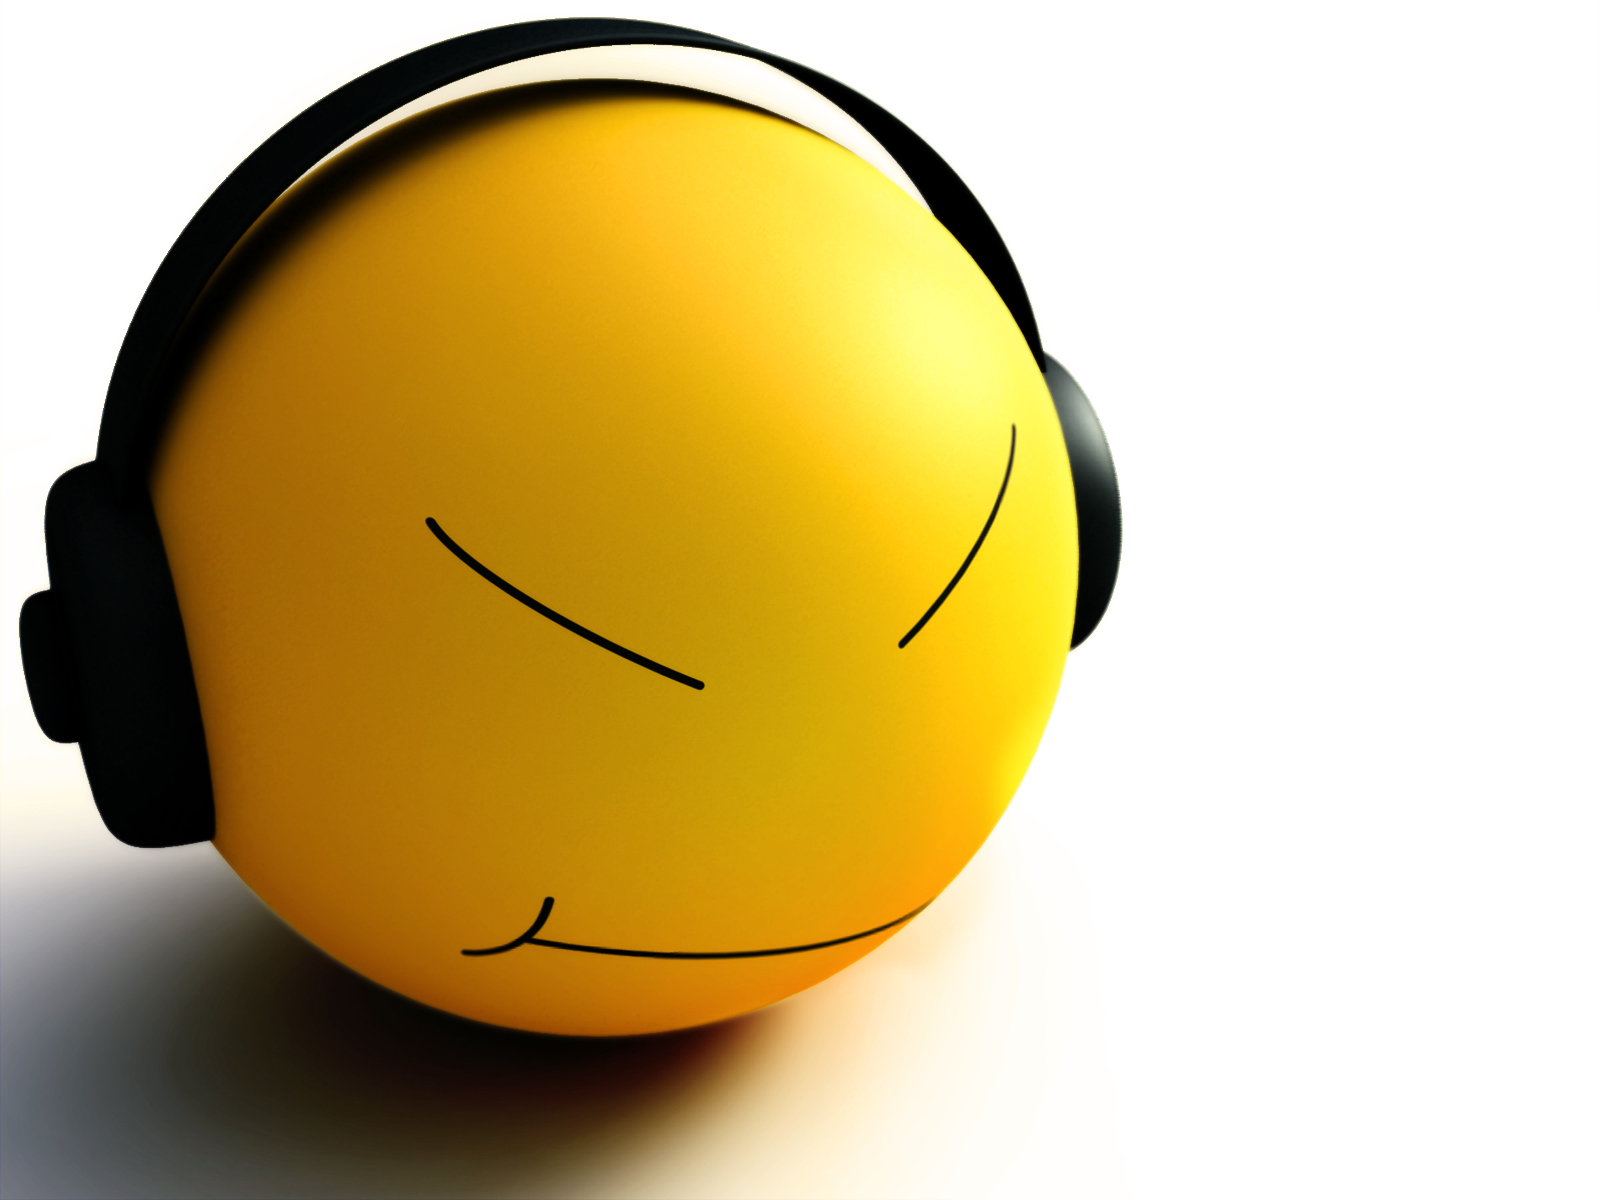 Smiley Listen Music Wallpapers HD Wallpapers 1600x1200